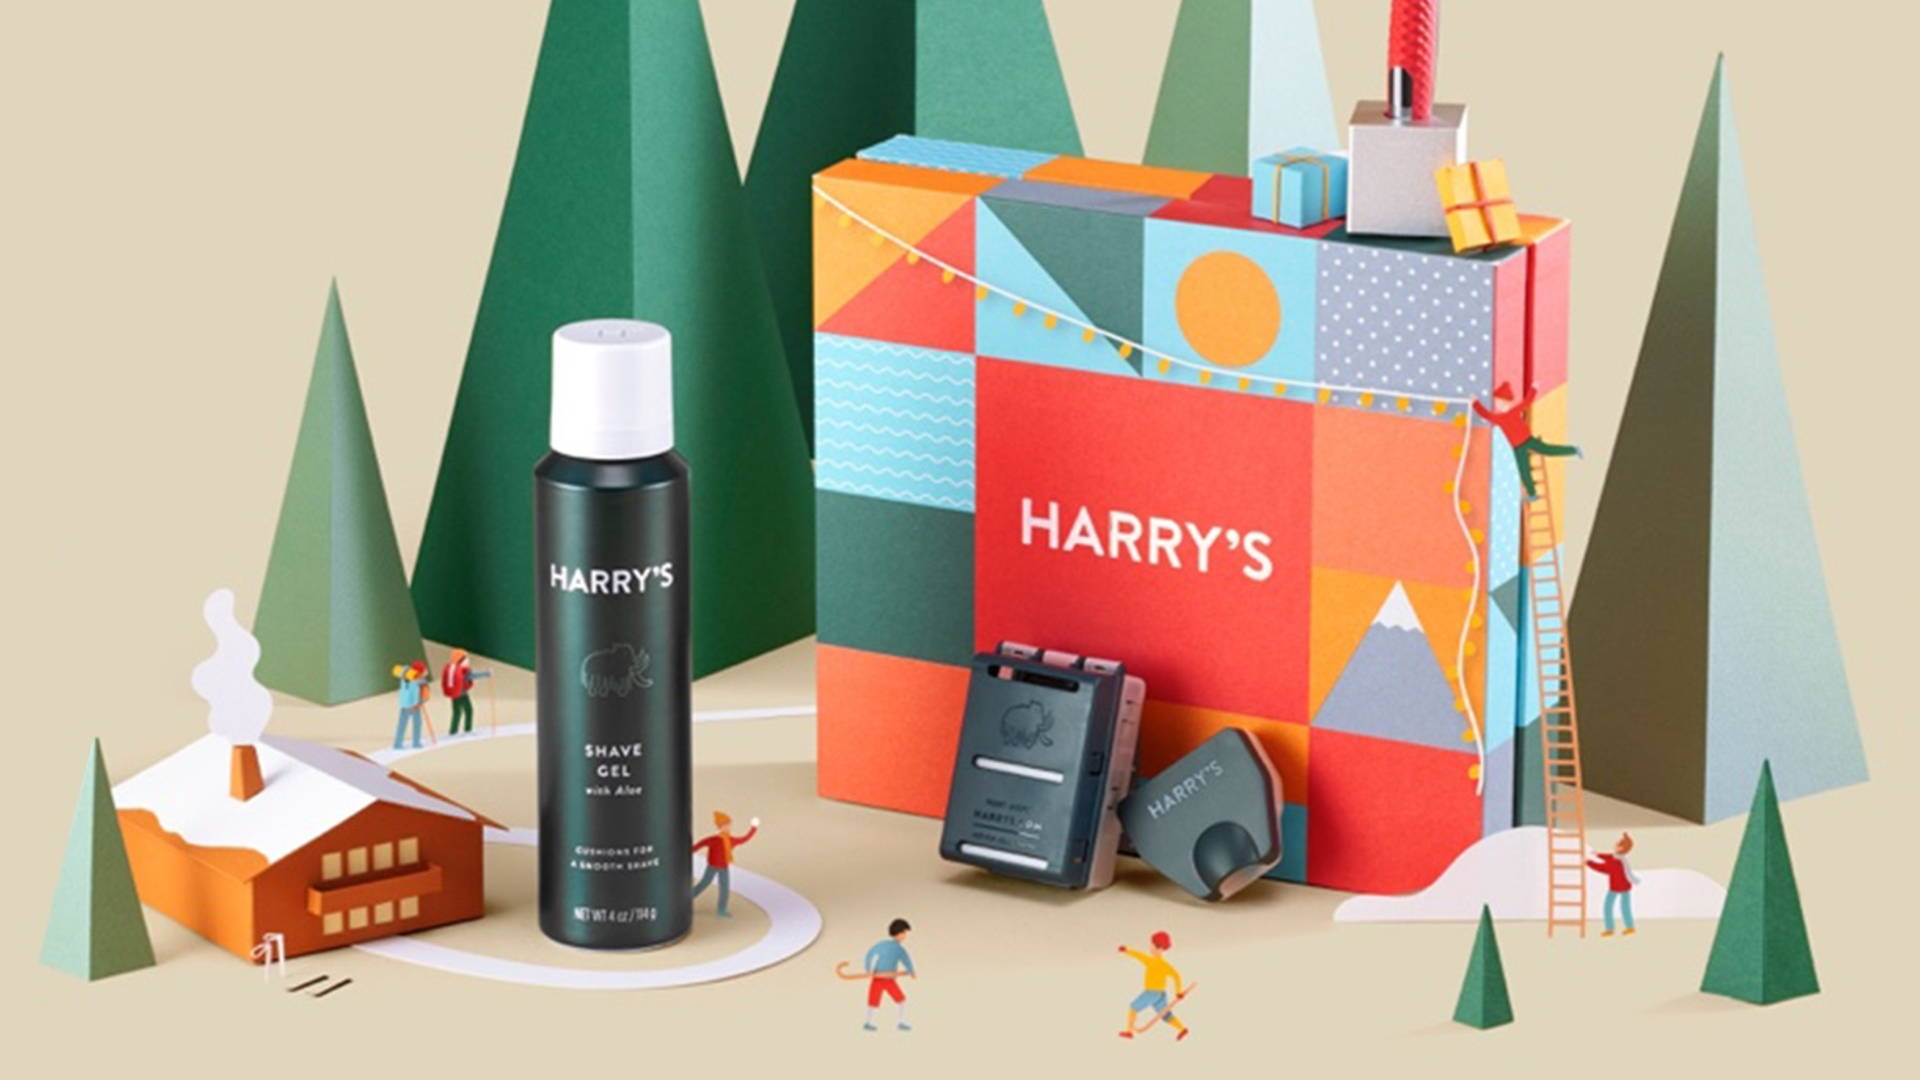 Harry S Shaving Holiday Gift Sets Feature Colorful And Non Denominational Packaging Ready To Gift Dieline Design Branding Packaging Inspiration